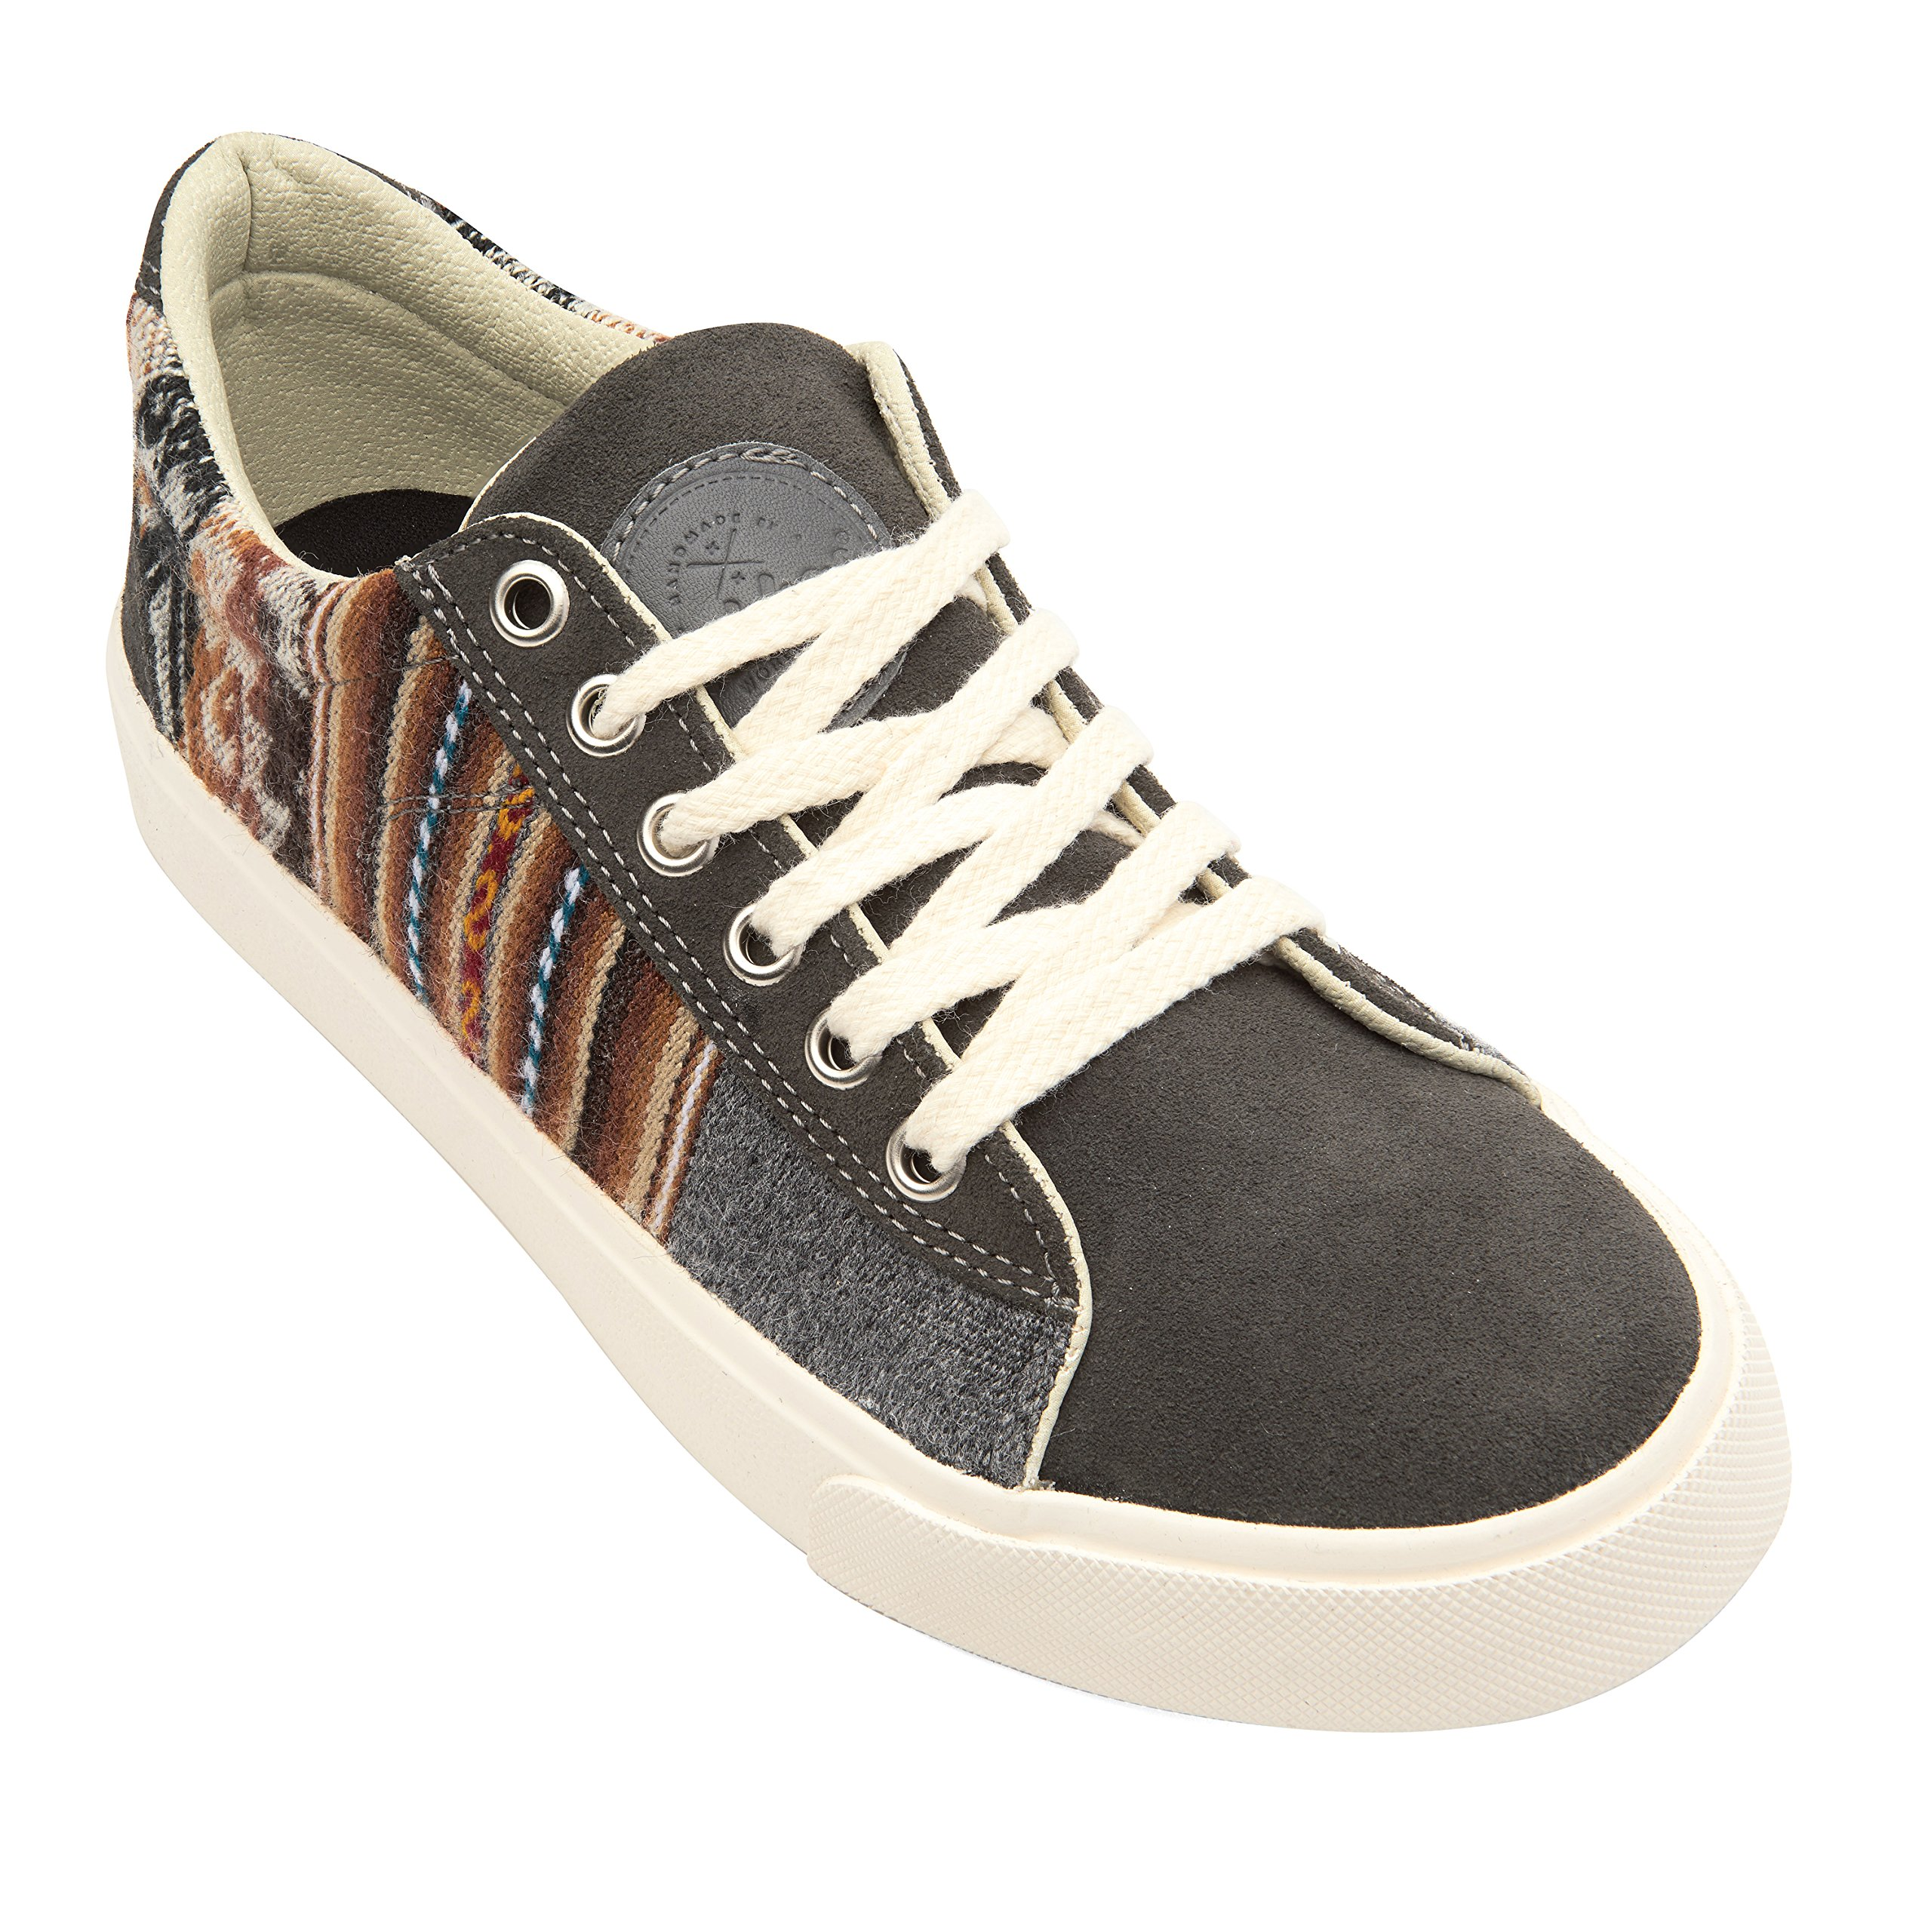 Inkkas Cusco Low Top